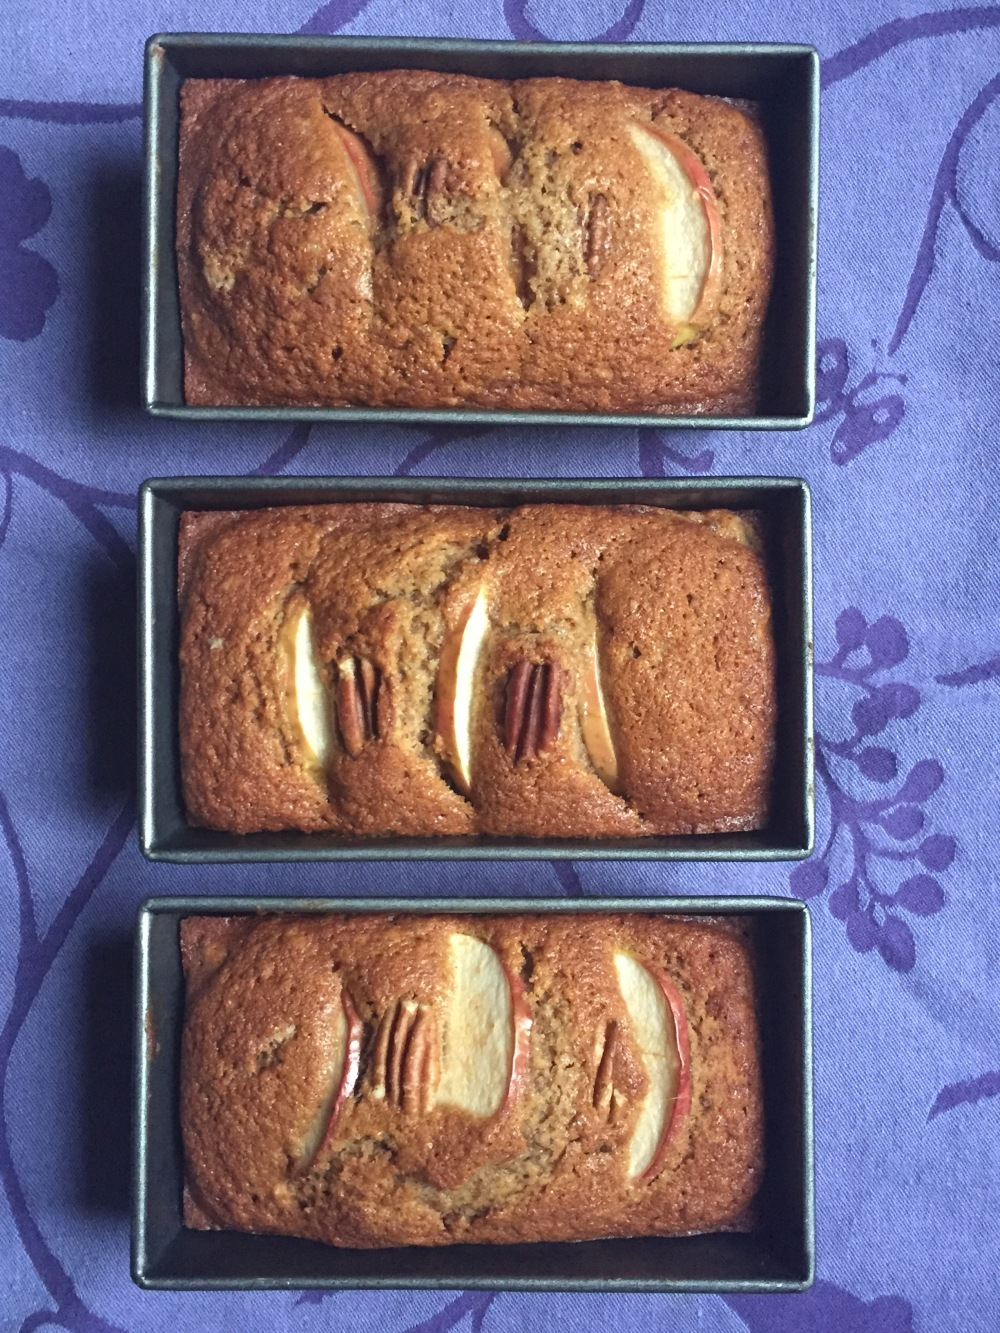 3 mini loaves